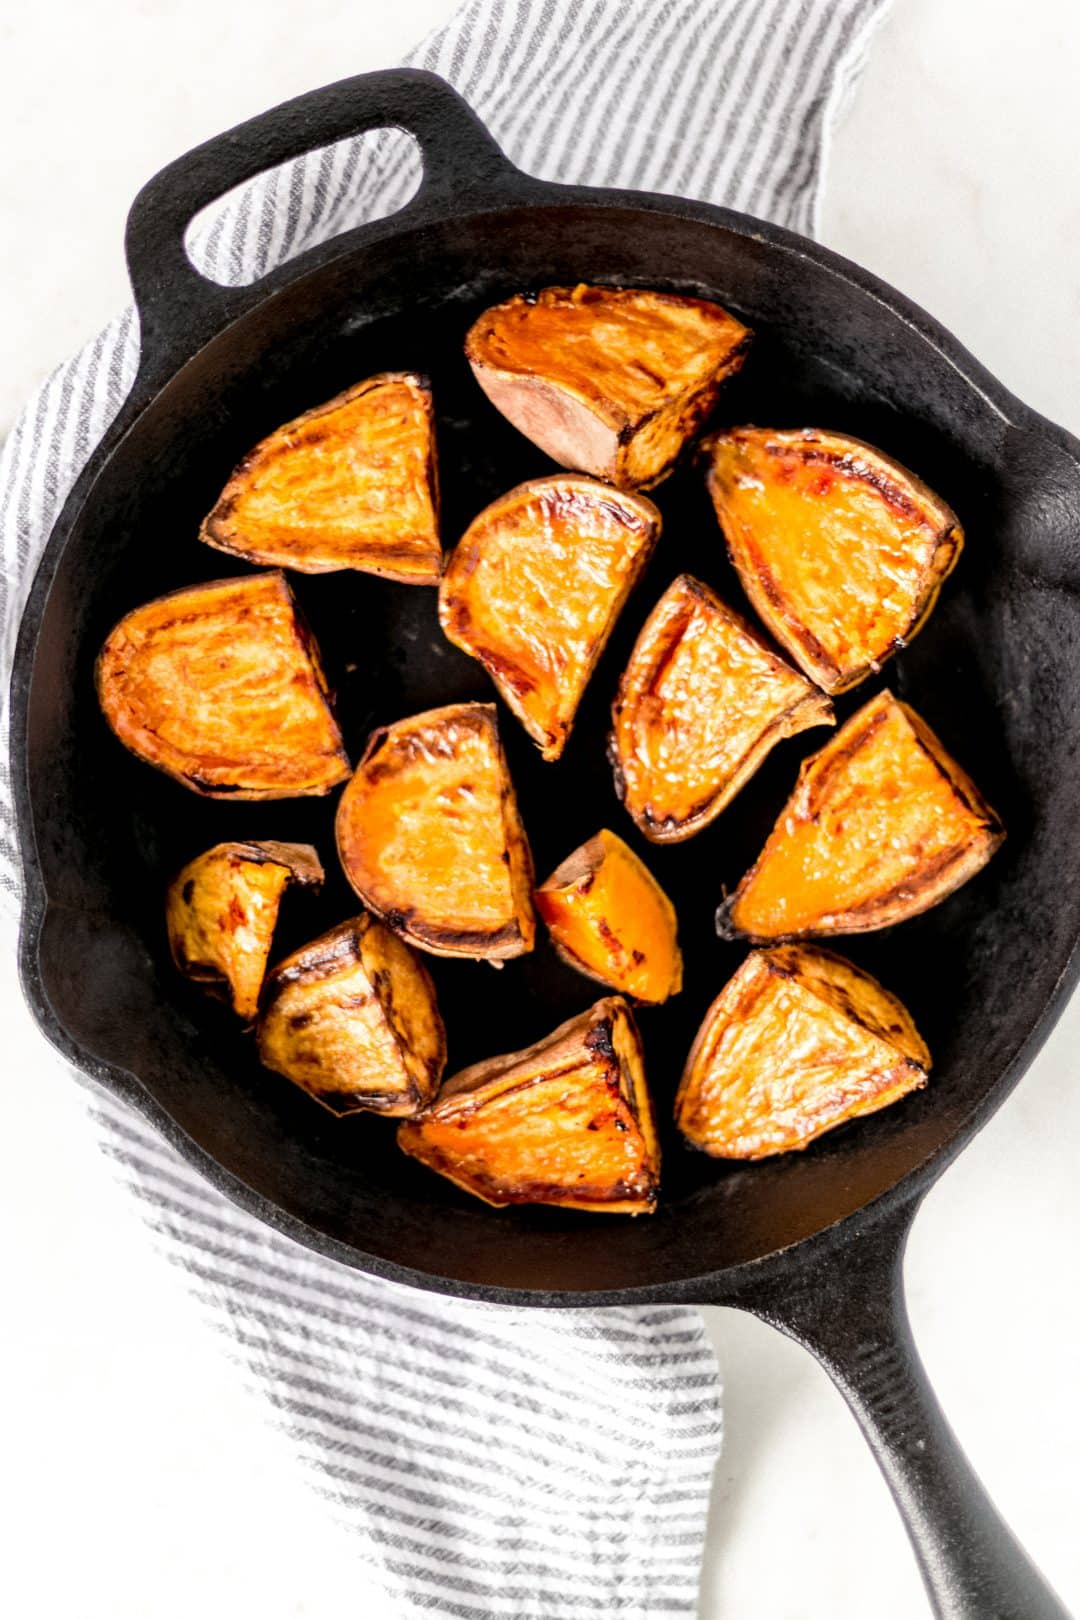 This recipe for Simple Roasted Sweet Potatoes is easy, healthy, and the perfect lazy person recipe. Making the perfect side dish to compliment any meal. simplylakita.com #sweetpotato #roastedsweetpotatorecipe